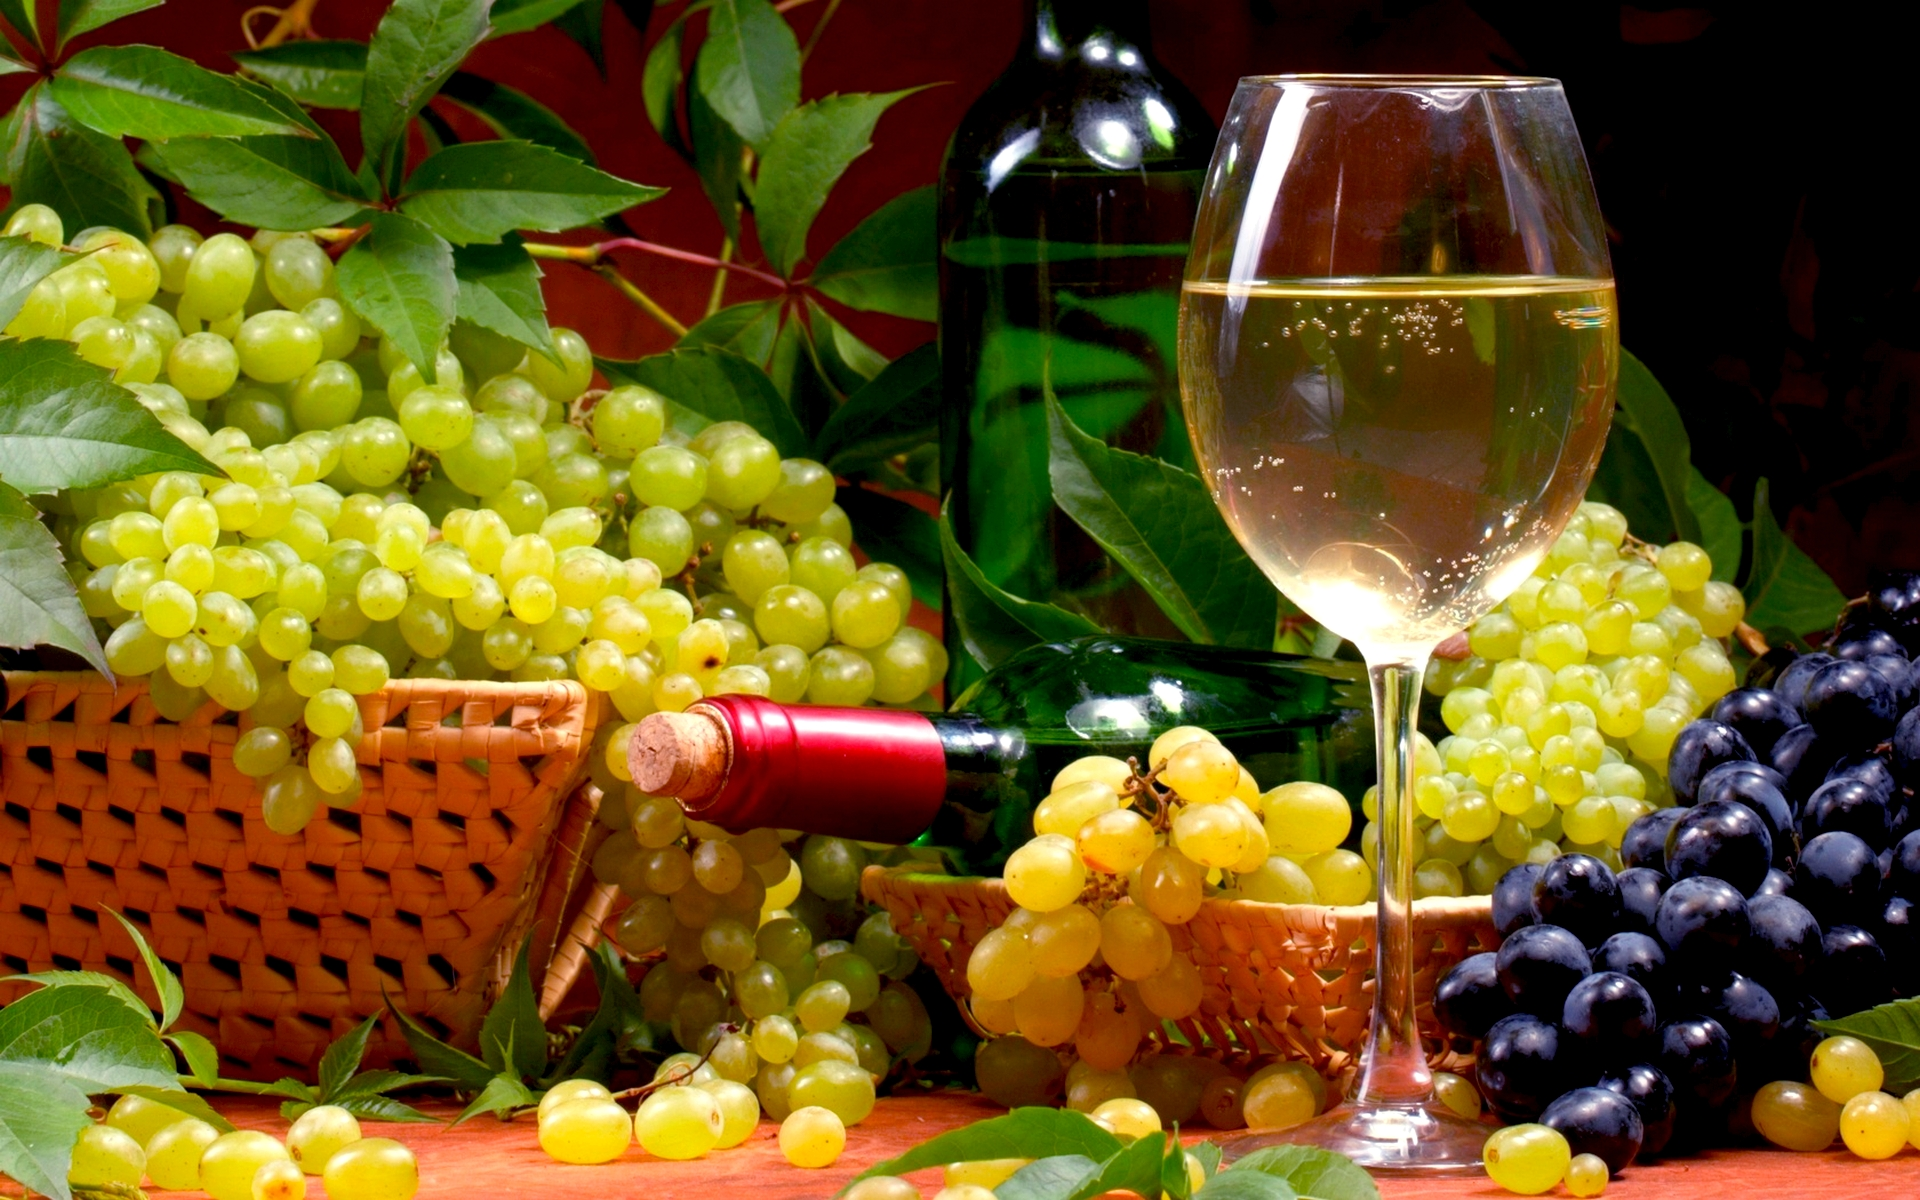 Pictire of a glass of wine and a basket of grapes